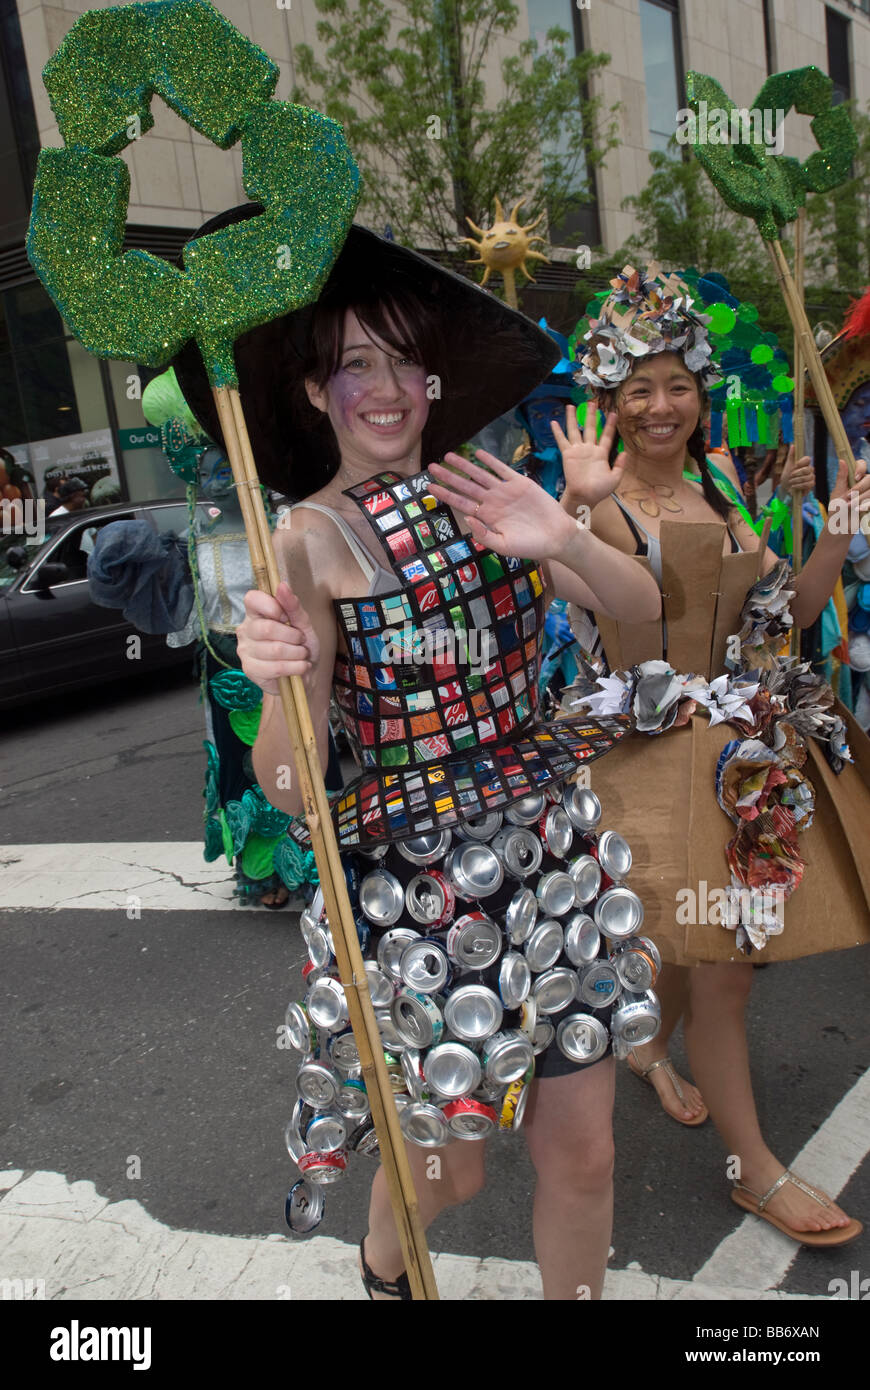 Participants Dressed In Recycling Costumes March In The